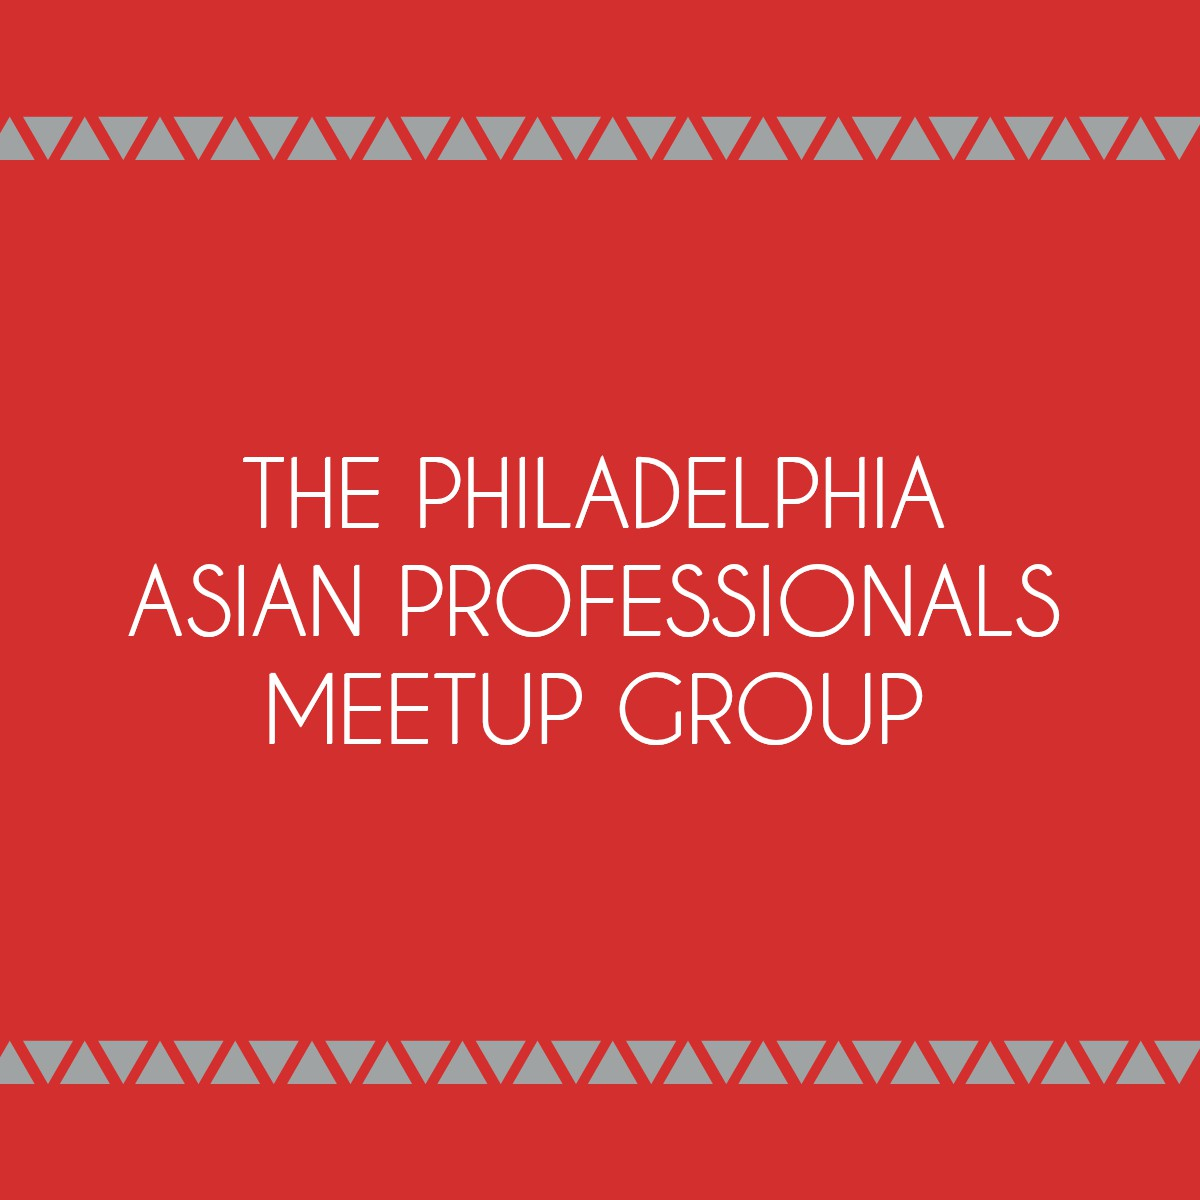 The Philadelphia Asian Professionals Meetup Group